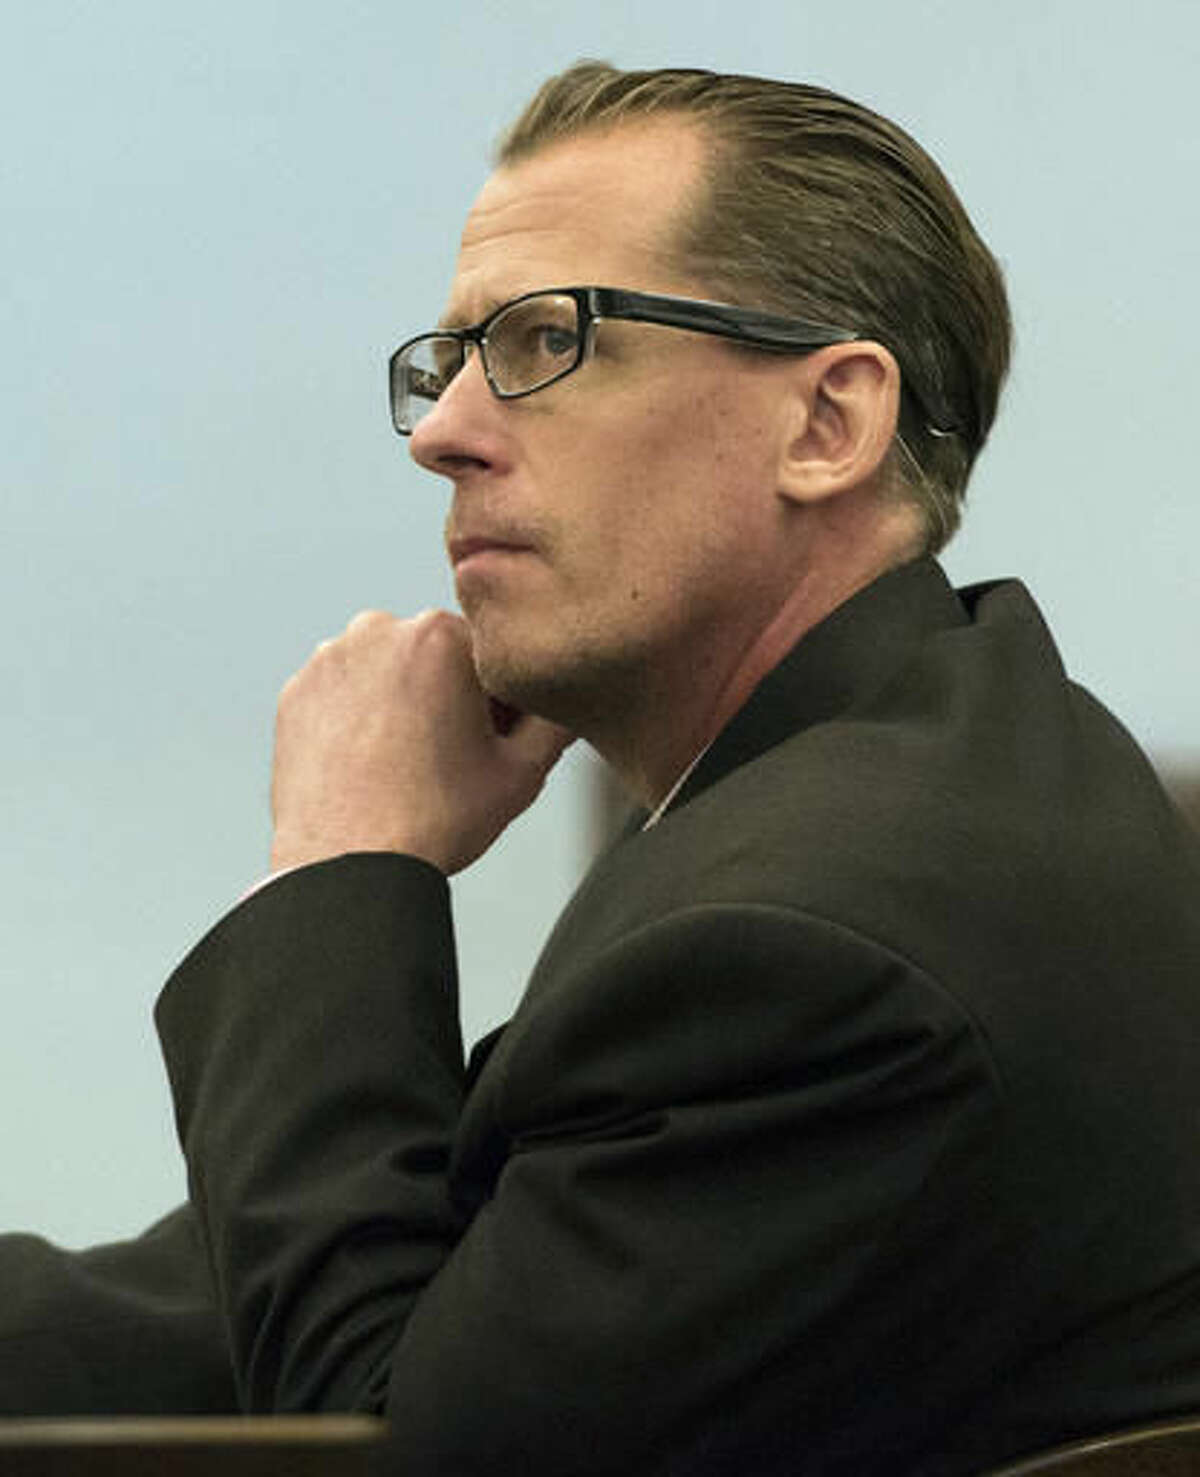 Steven Dean Gordon listens during opening statements in his trial Wednesday, Nov. 16, 2016, at Orange County Superior Court in Santa Ana. Calif. Gordon, 47, a sex offender accused of raping and killing four women while he wore an electronic monitoring device during a months-long rampage in Southern California, is acting as his own attorney during opening statements. (Sam Gangwer/The Orange County Register via AP) /The Orange County Register via AP)